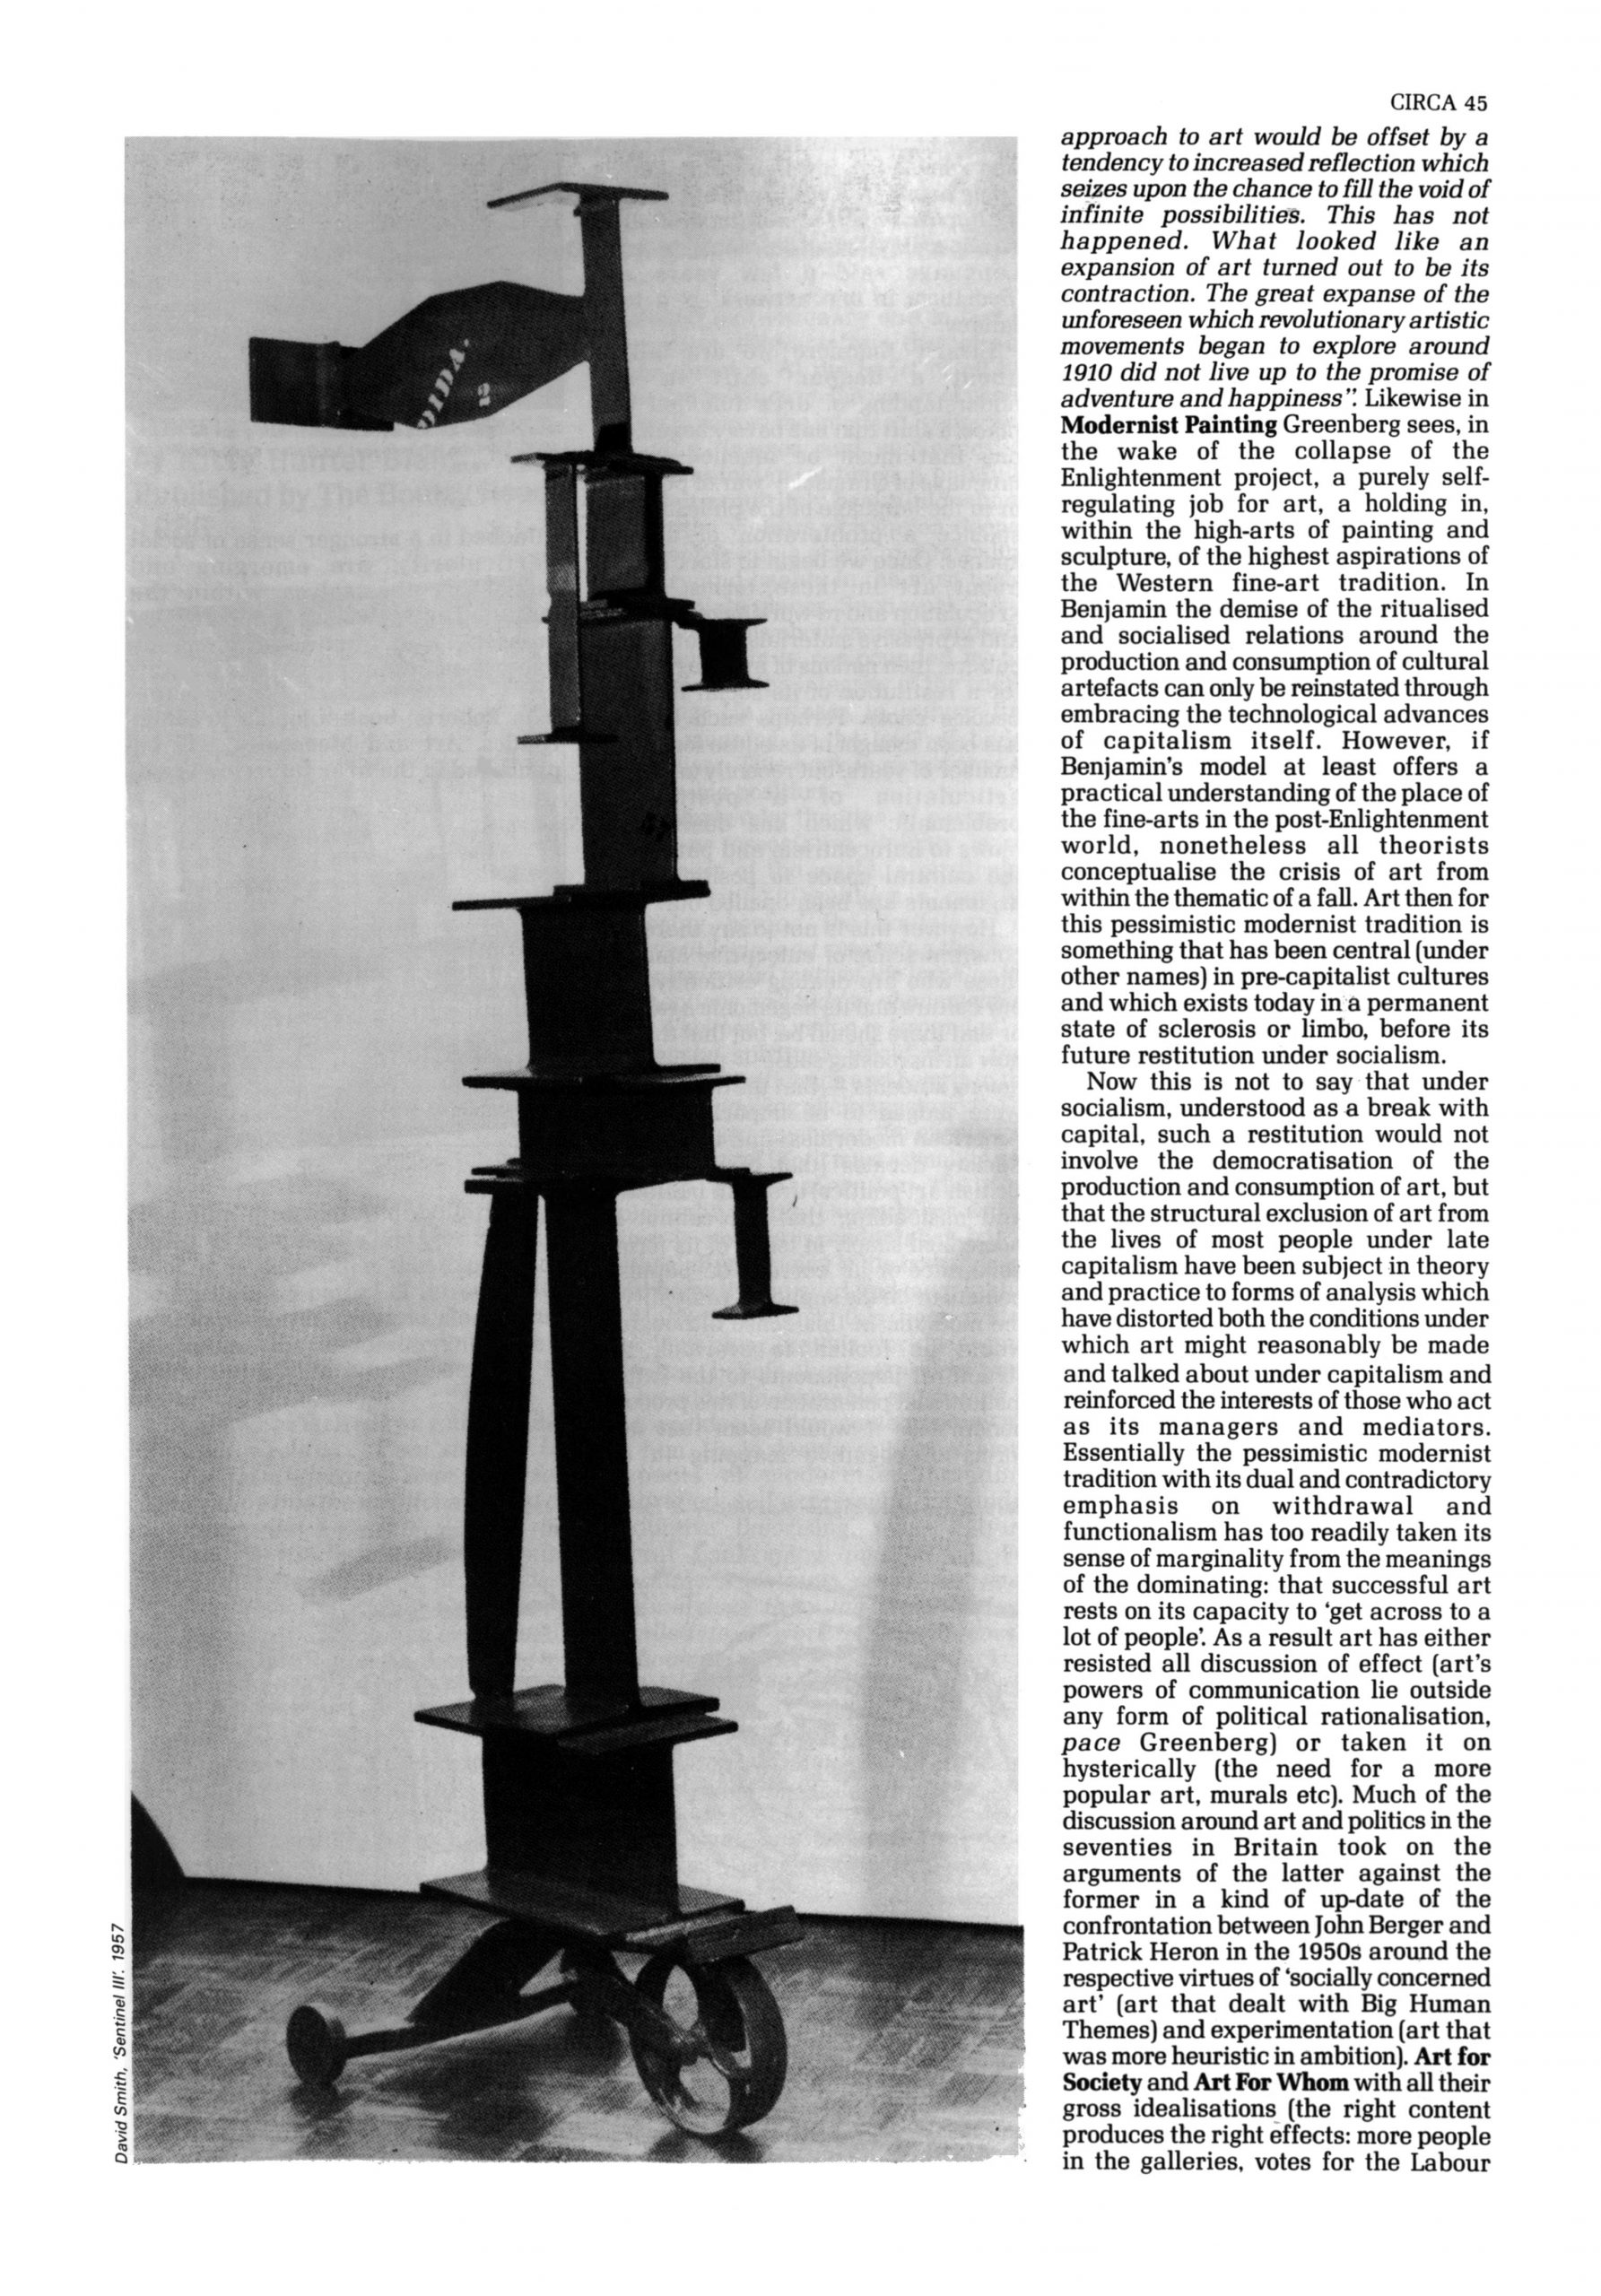 John Roberts / Art and Marginality, Circa Art Magazine, issue 30, September / October 1986, p. 45